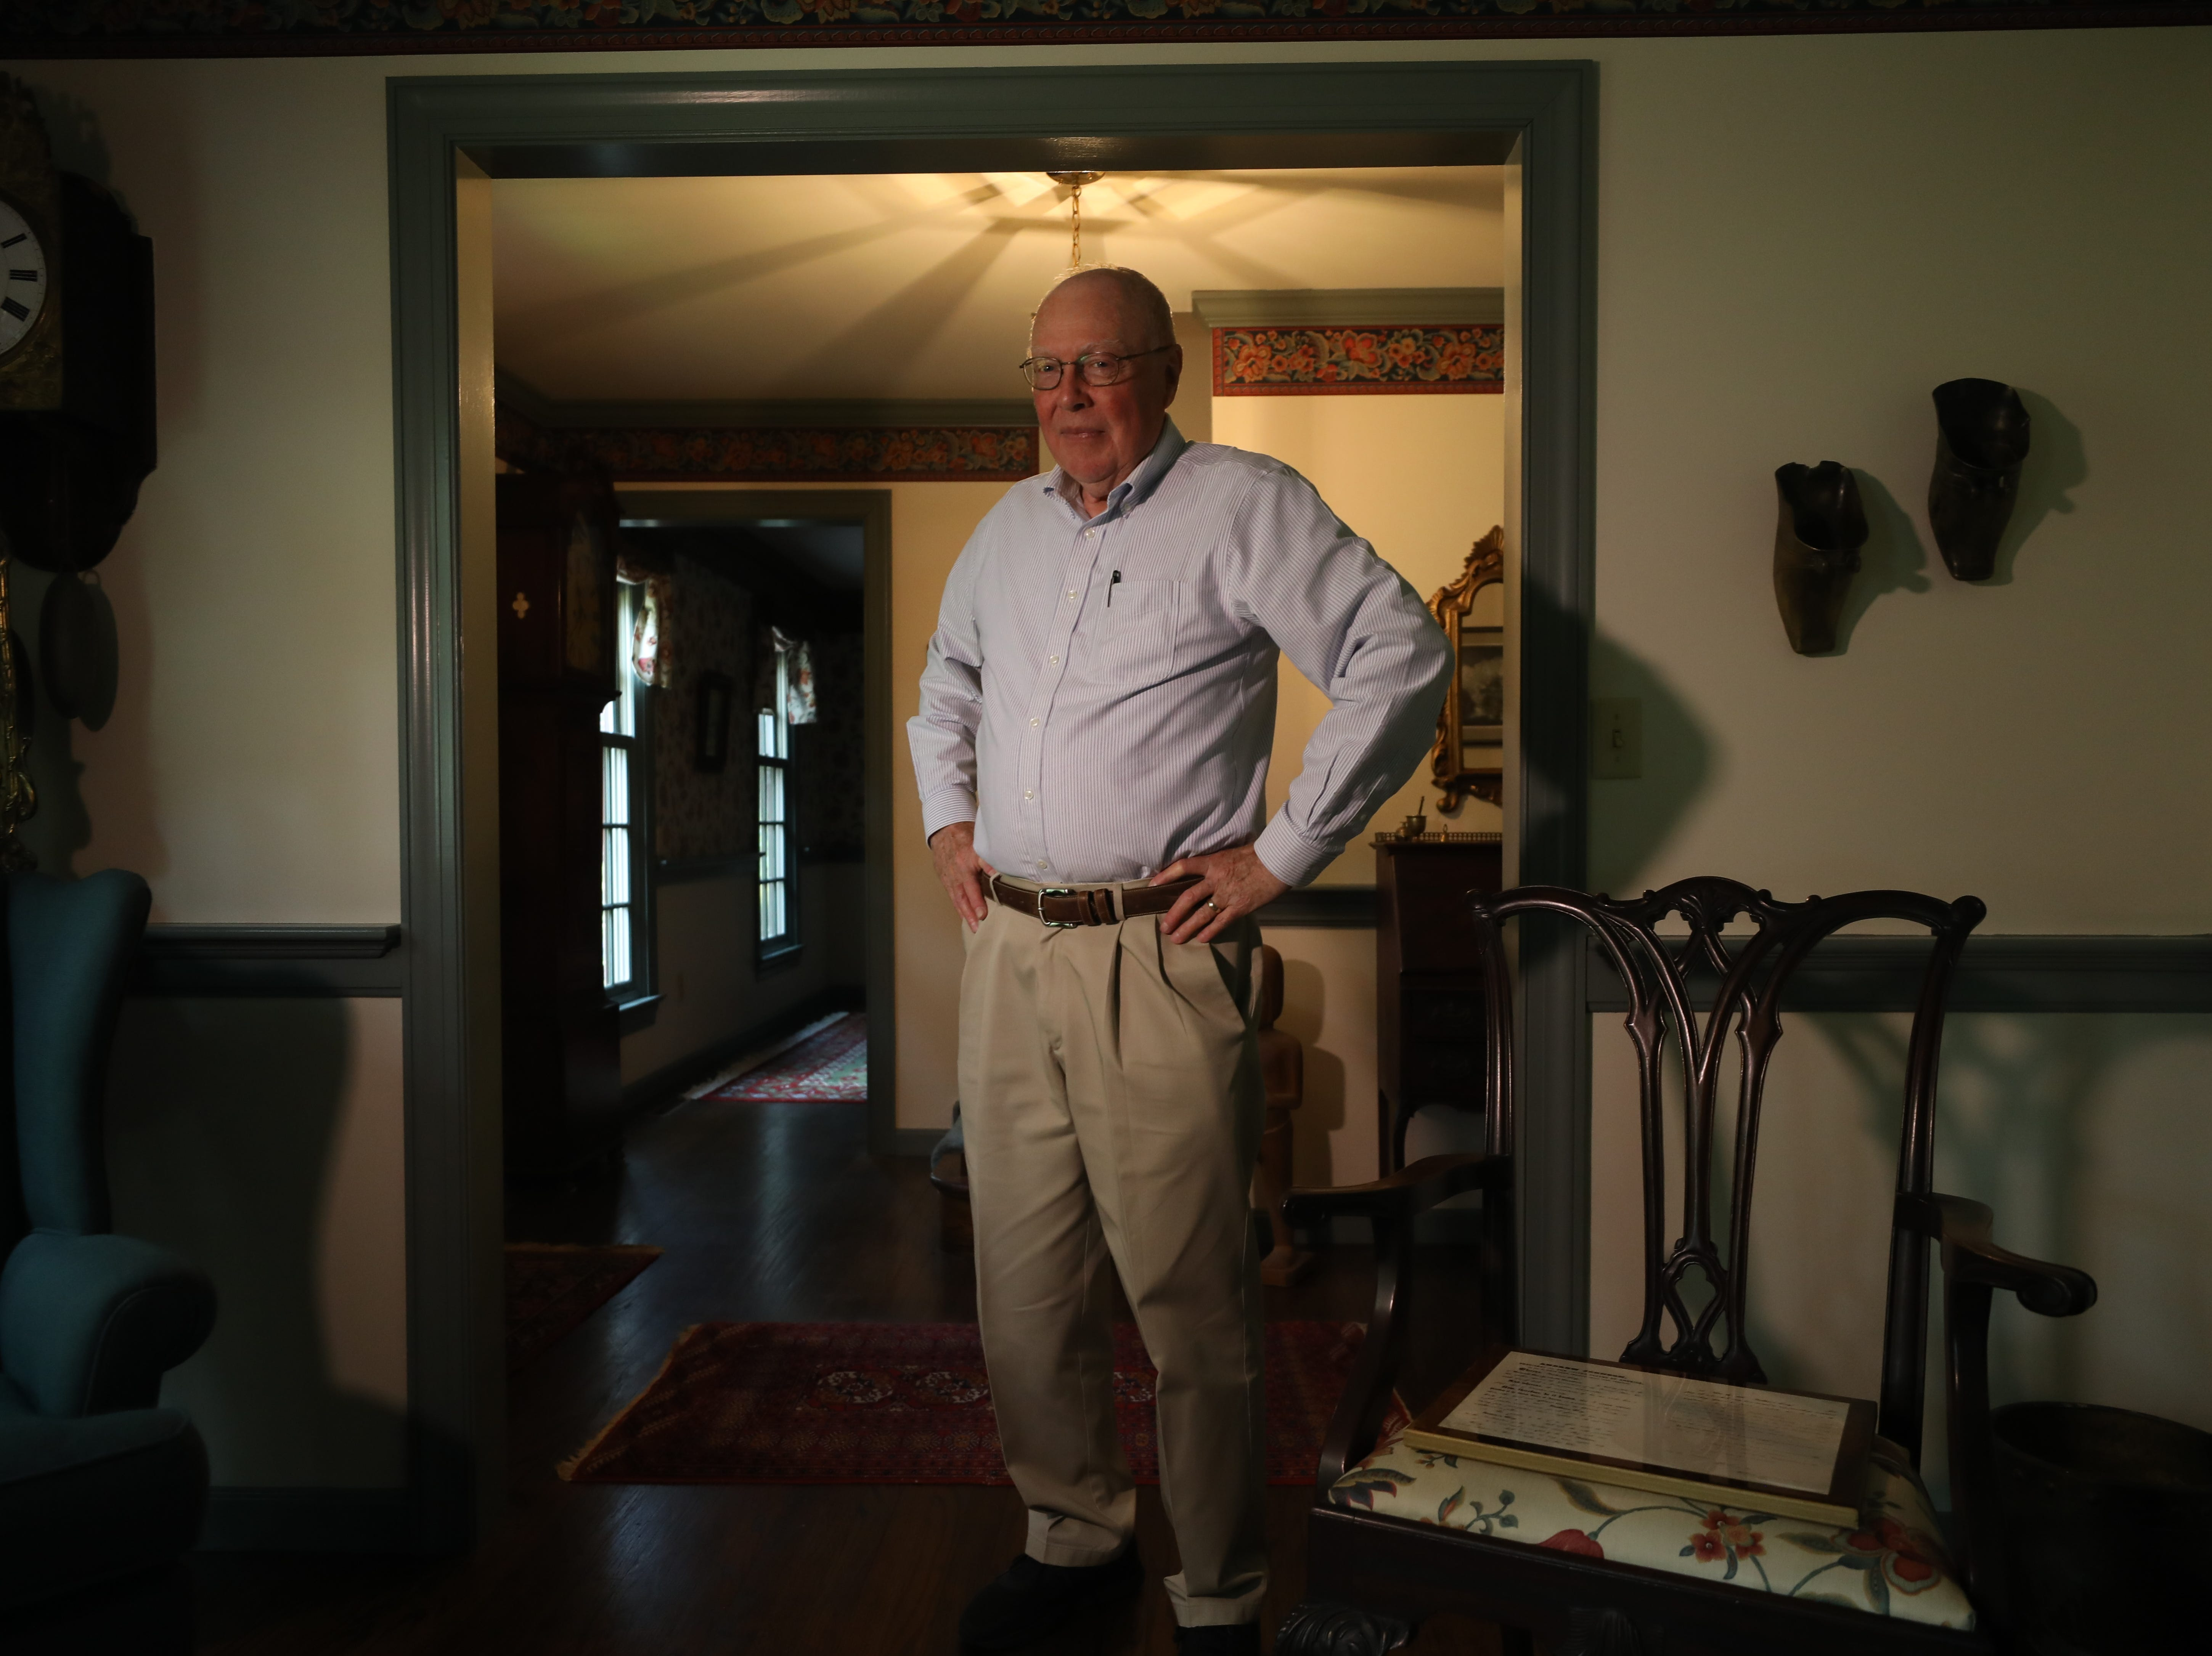 Retired Gettysburg College Spanish Professor Currie Kerr Thompson at his home. Although he opposes President Donald Trump, he is trying to bring together Republicans and Democrats to find common ground.